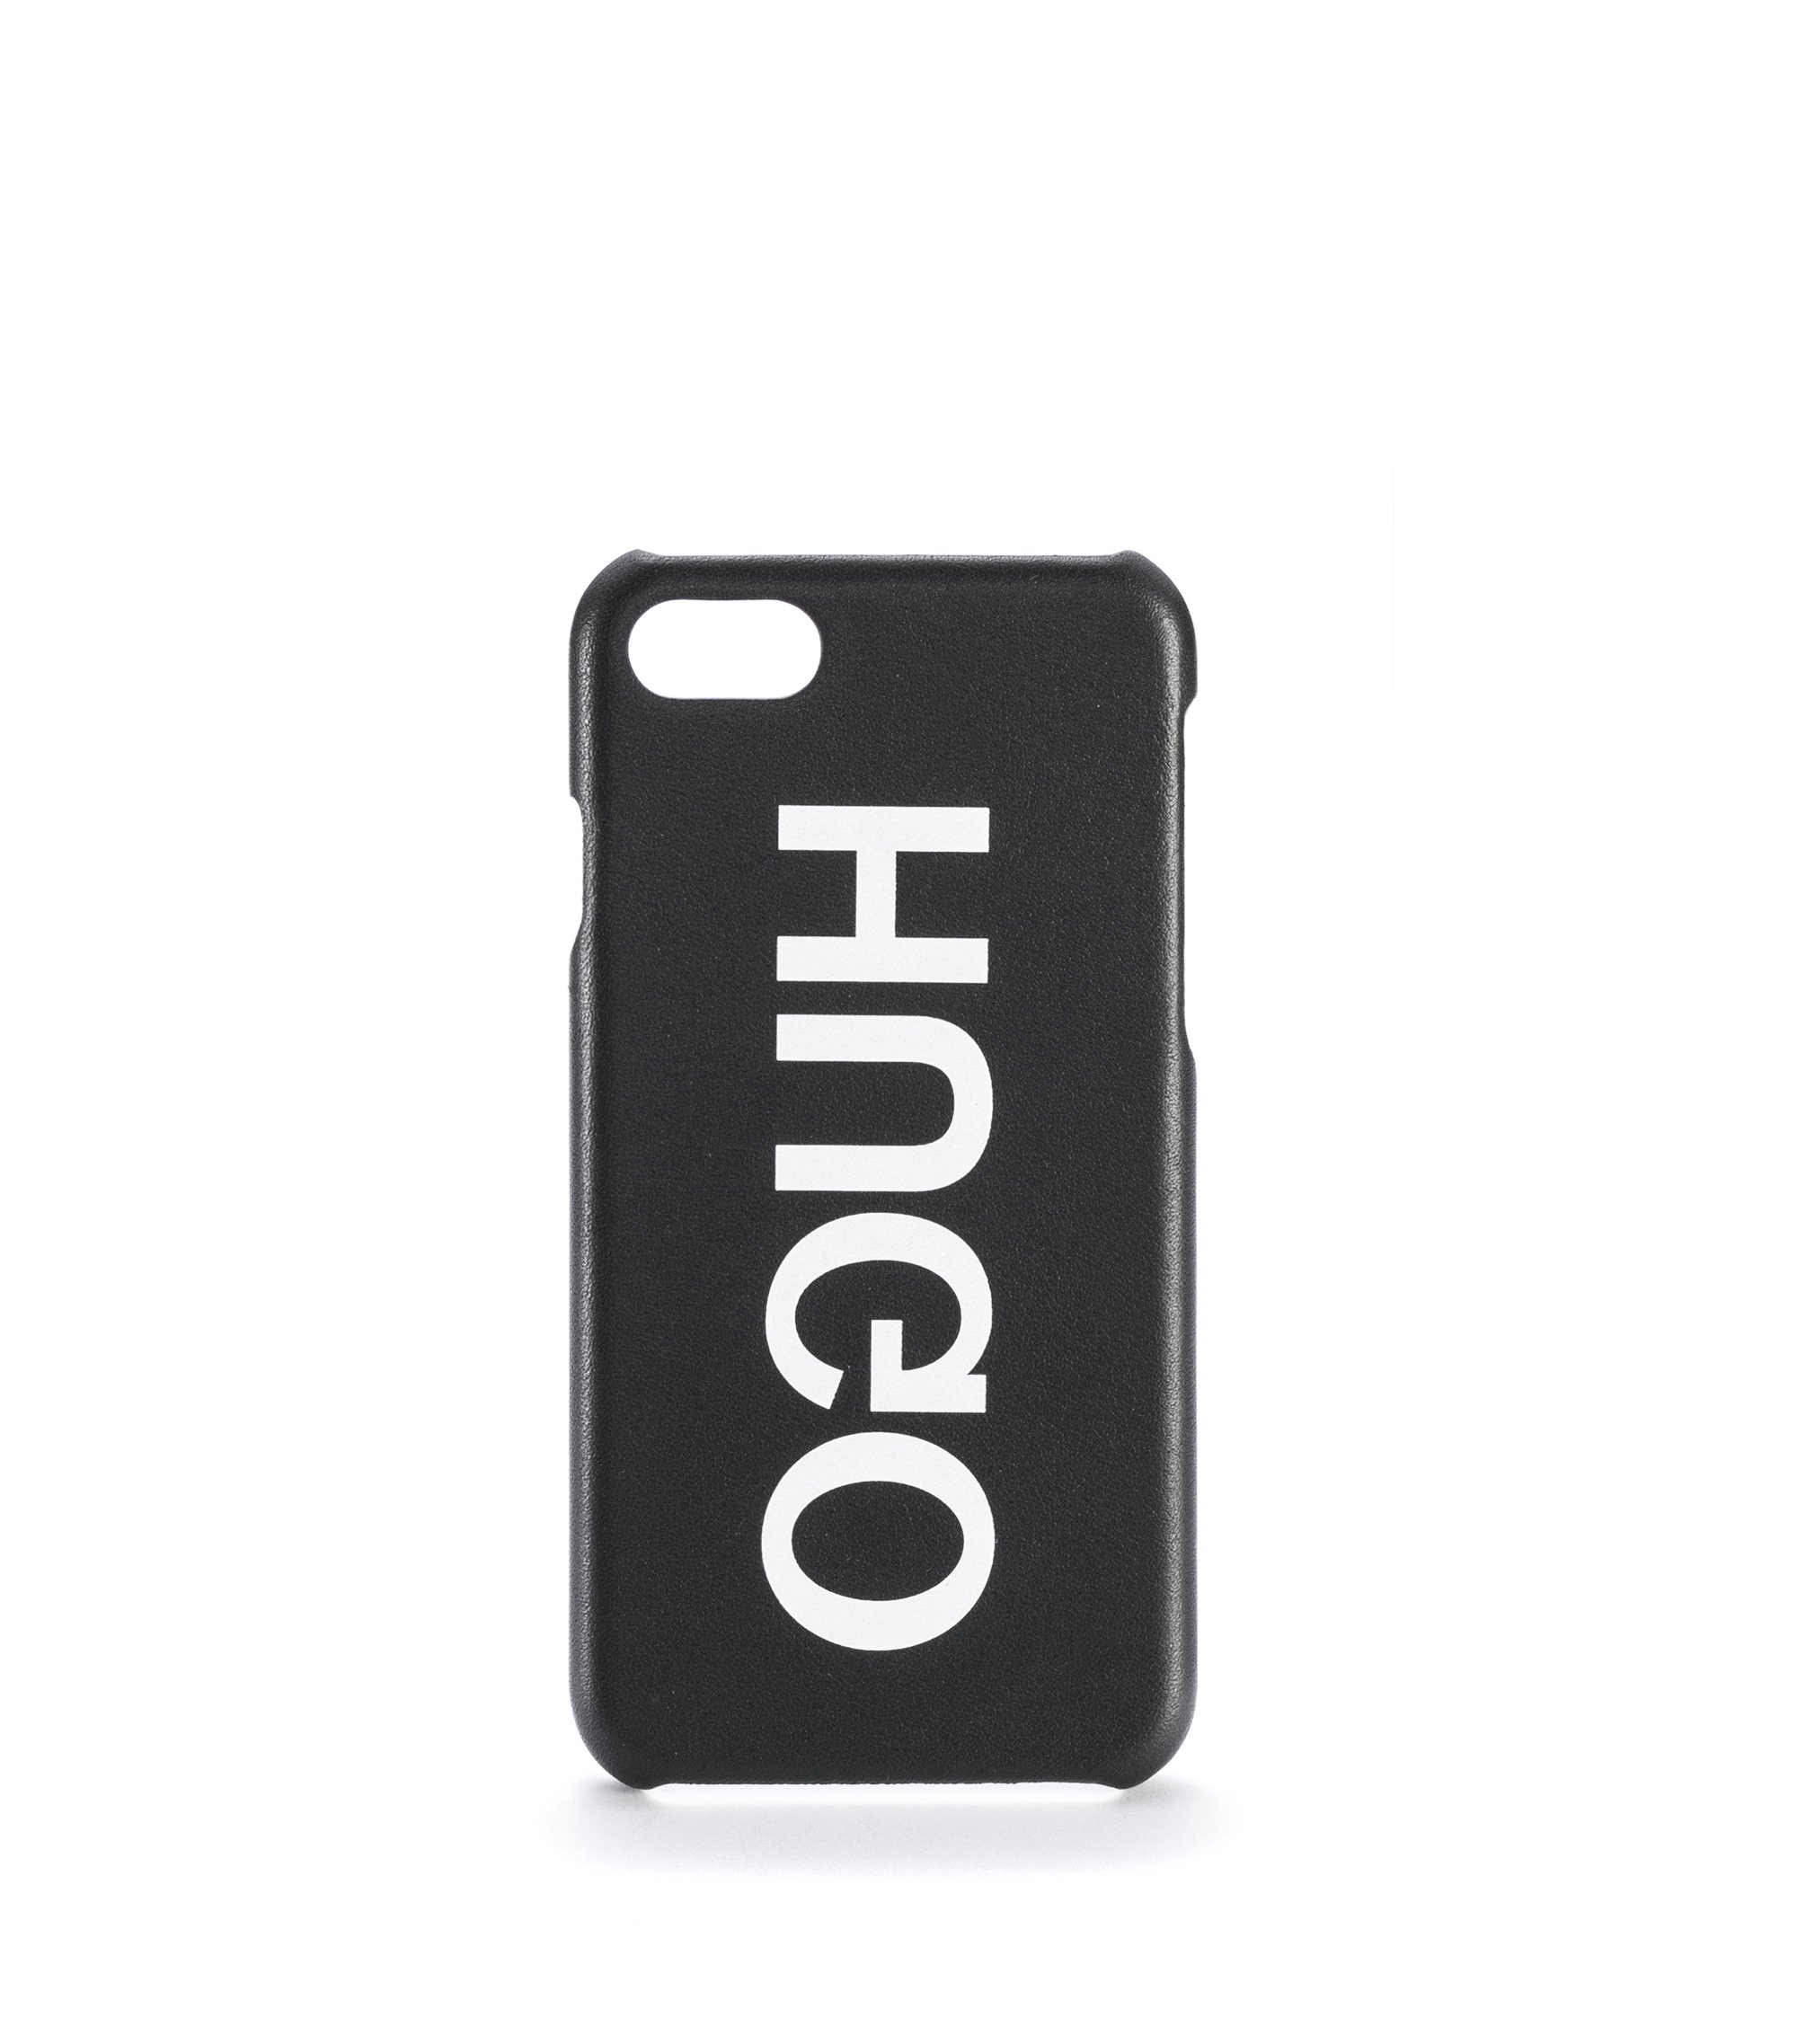 Reverse-logo iPhone 7 case, Black